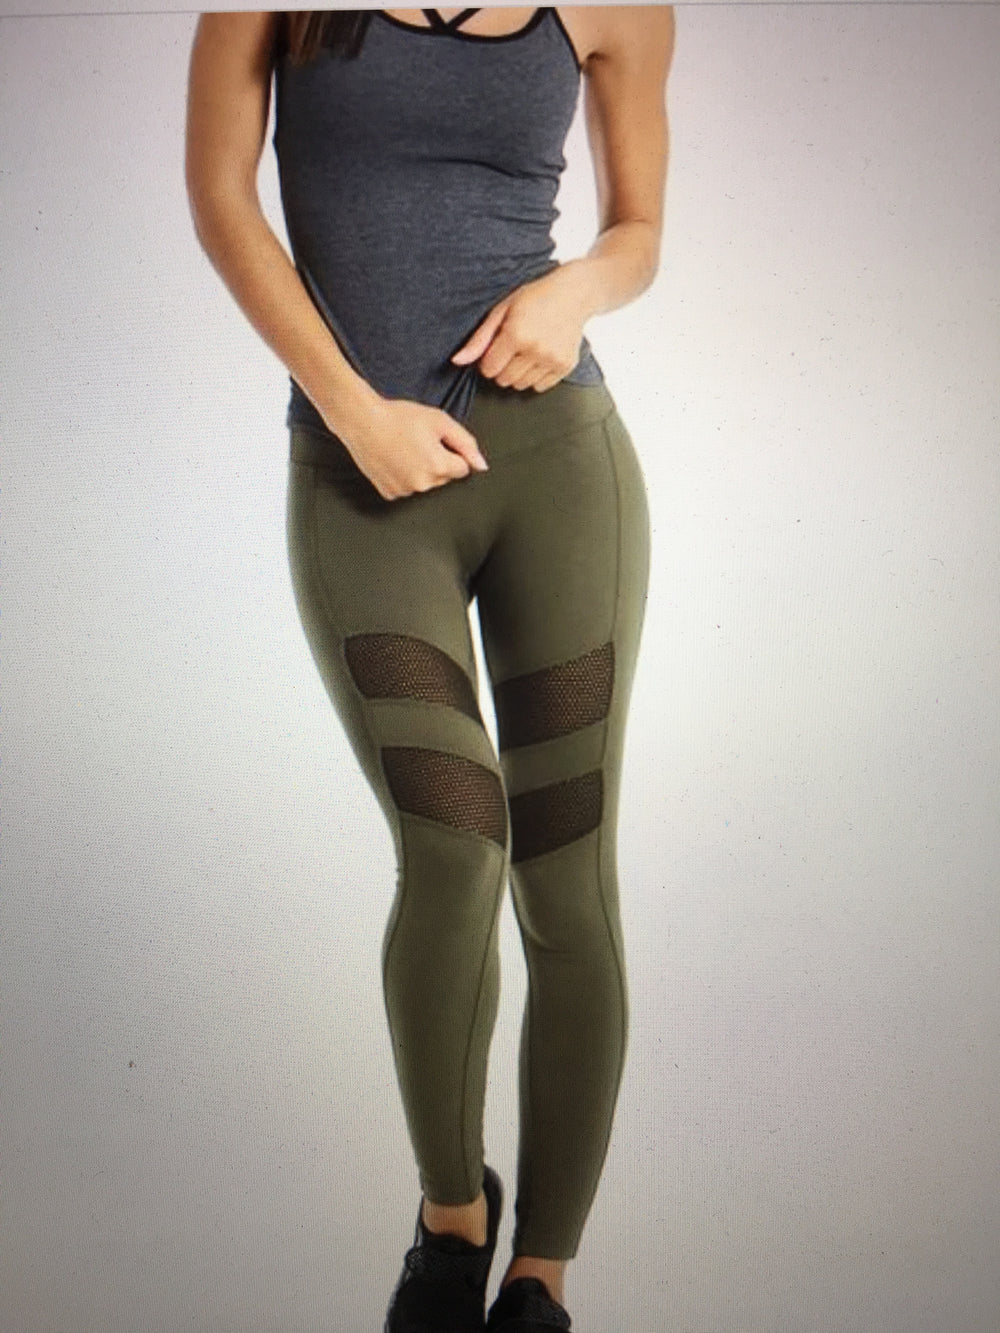 Mesh Inset Legging in Olive by Hard Tail